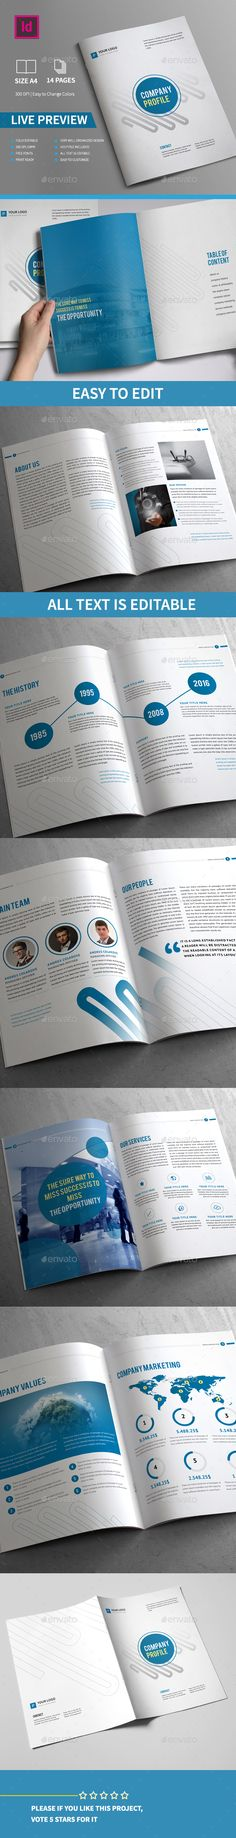 Company Profile Brochure 14 Pages A4 Template PSD #design Download: http://graphicriver.net/item/company-profile-brochure-14-pages-a4/13499951?ref=ksioks